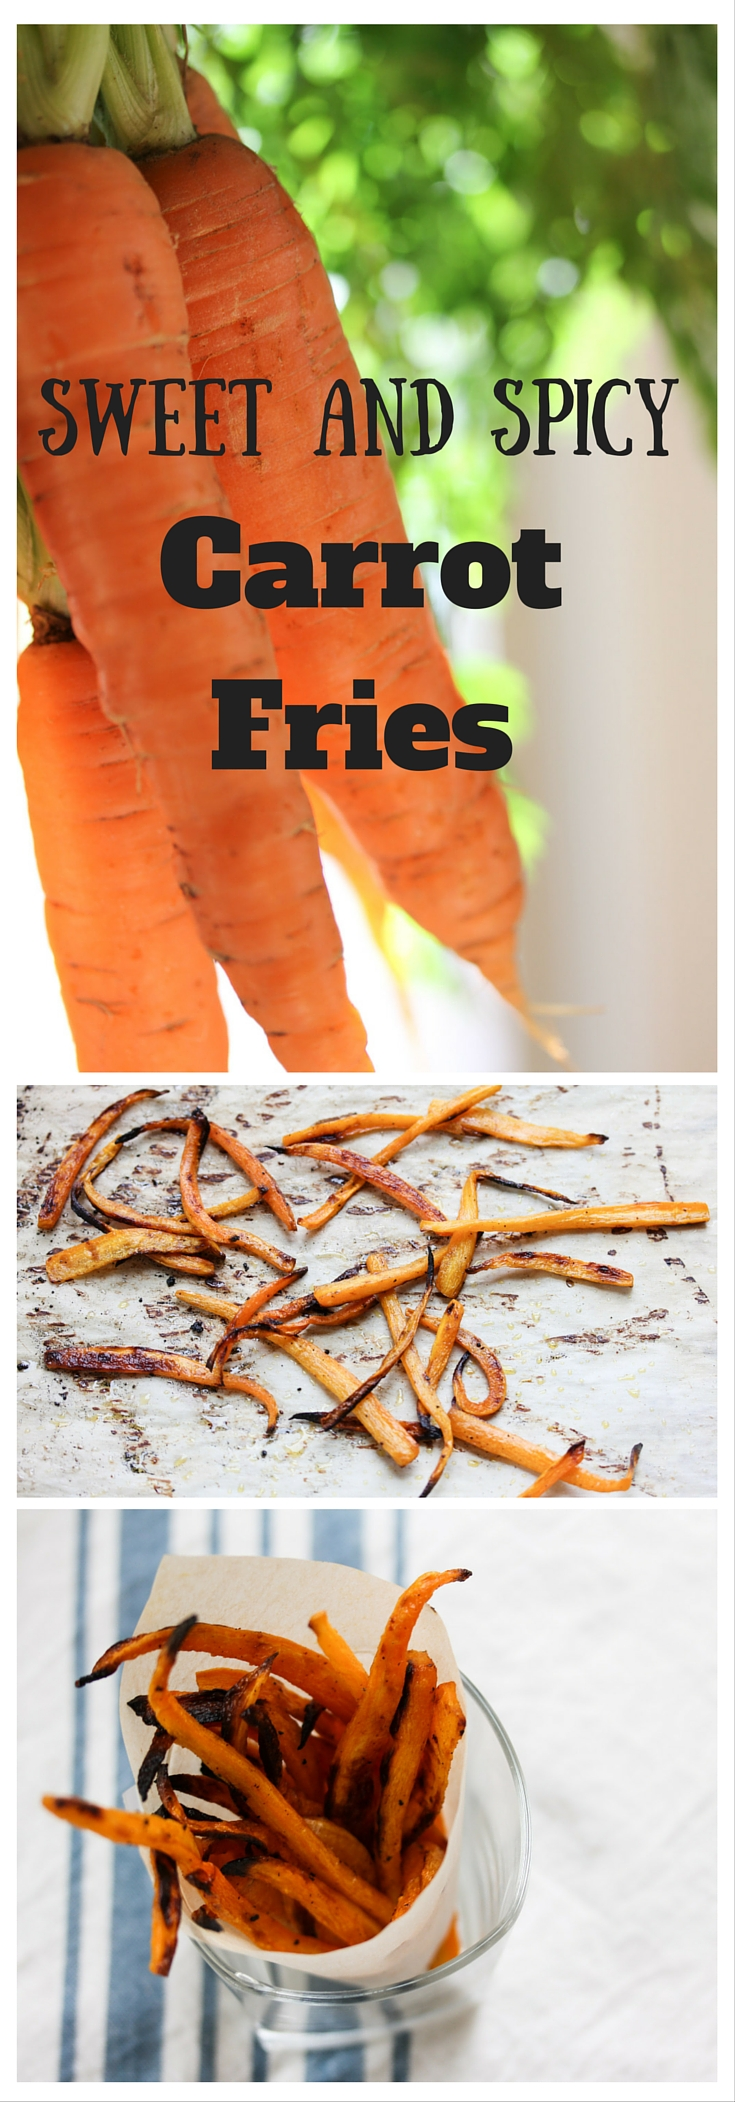 Sweet and Spicy Carrot Fries